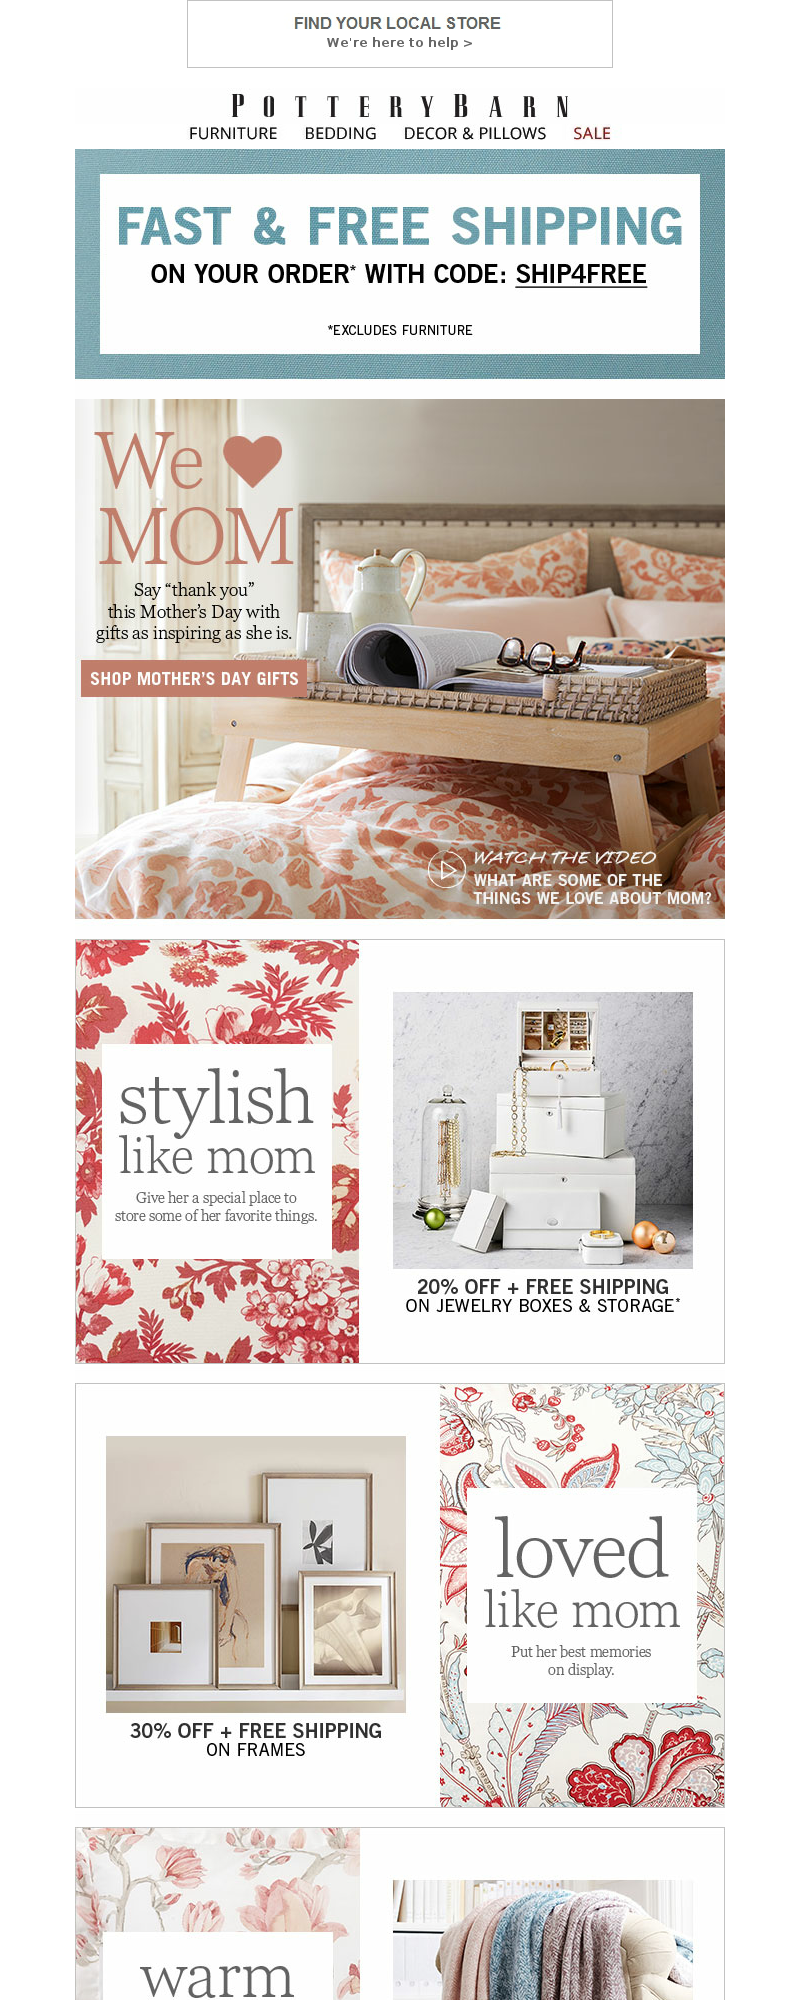 Pottery Barn - WE ❤️ MOM – Our Mother's Day Gift Picks Are In!